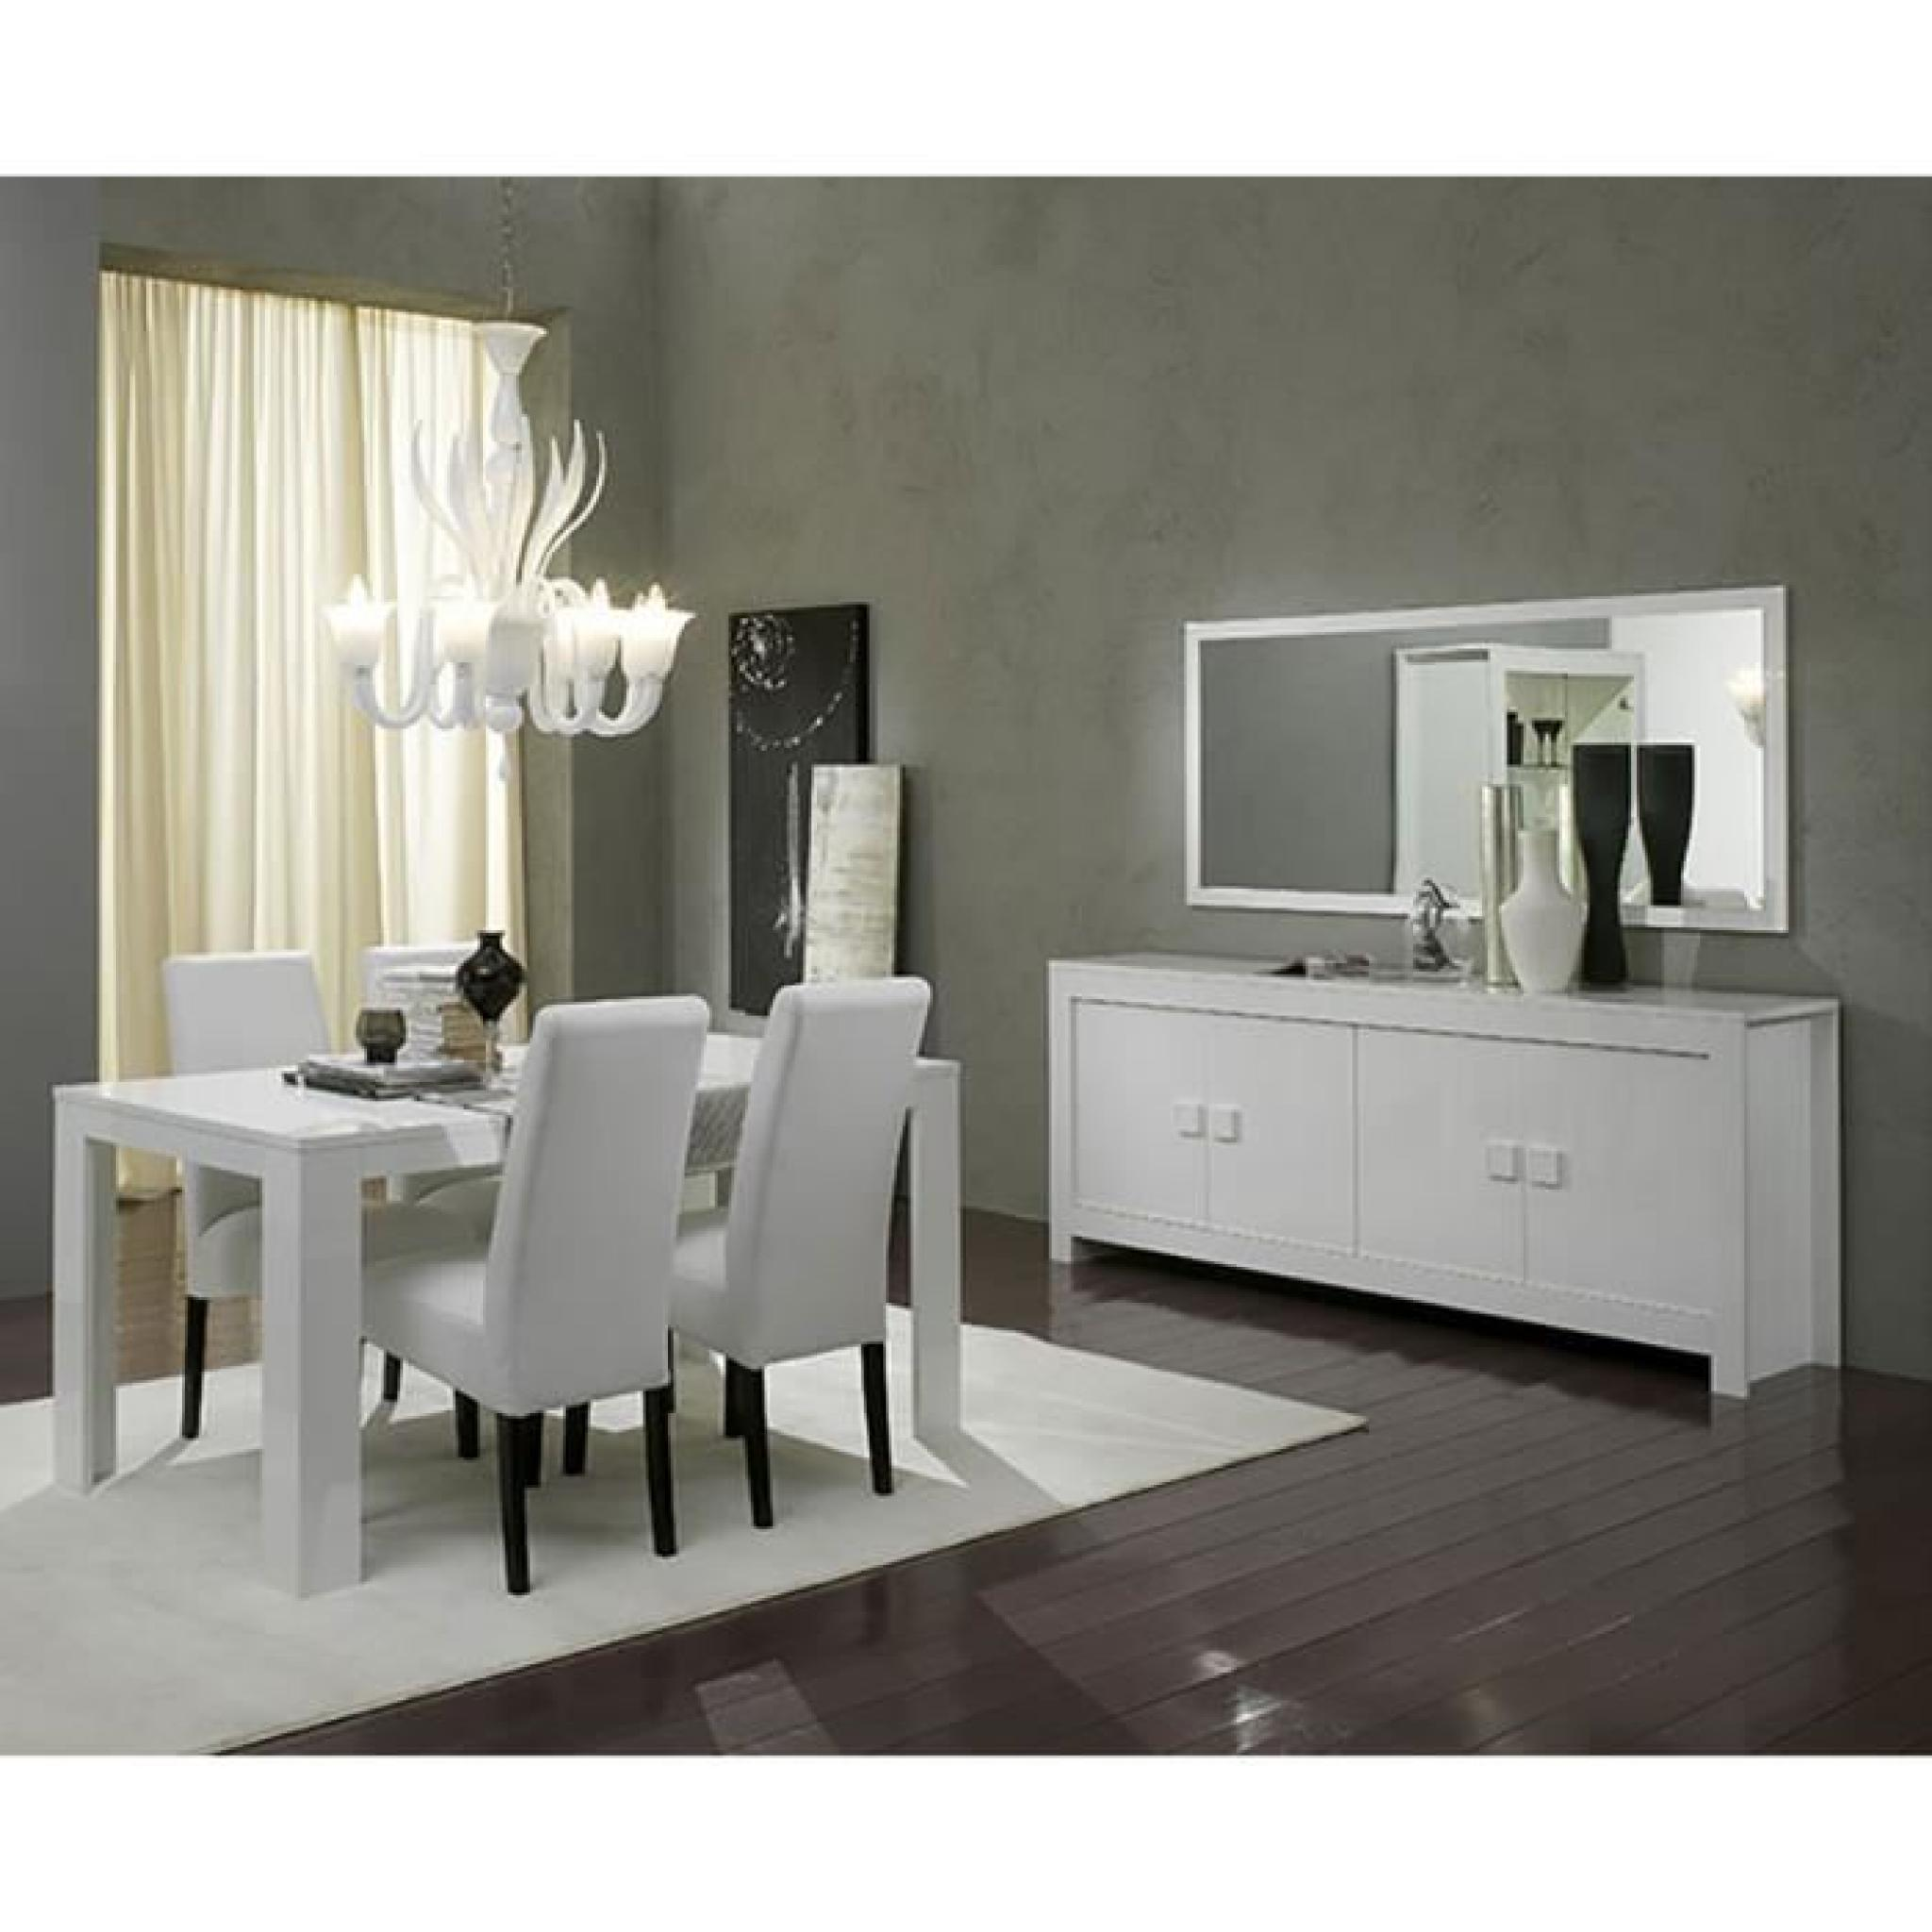 salle manger compl te blanc laqu design tamara 2 buffet table l 160 cm achat vente. Black Bedroom Furniture Sets. Home Design Ideas